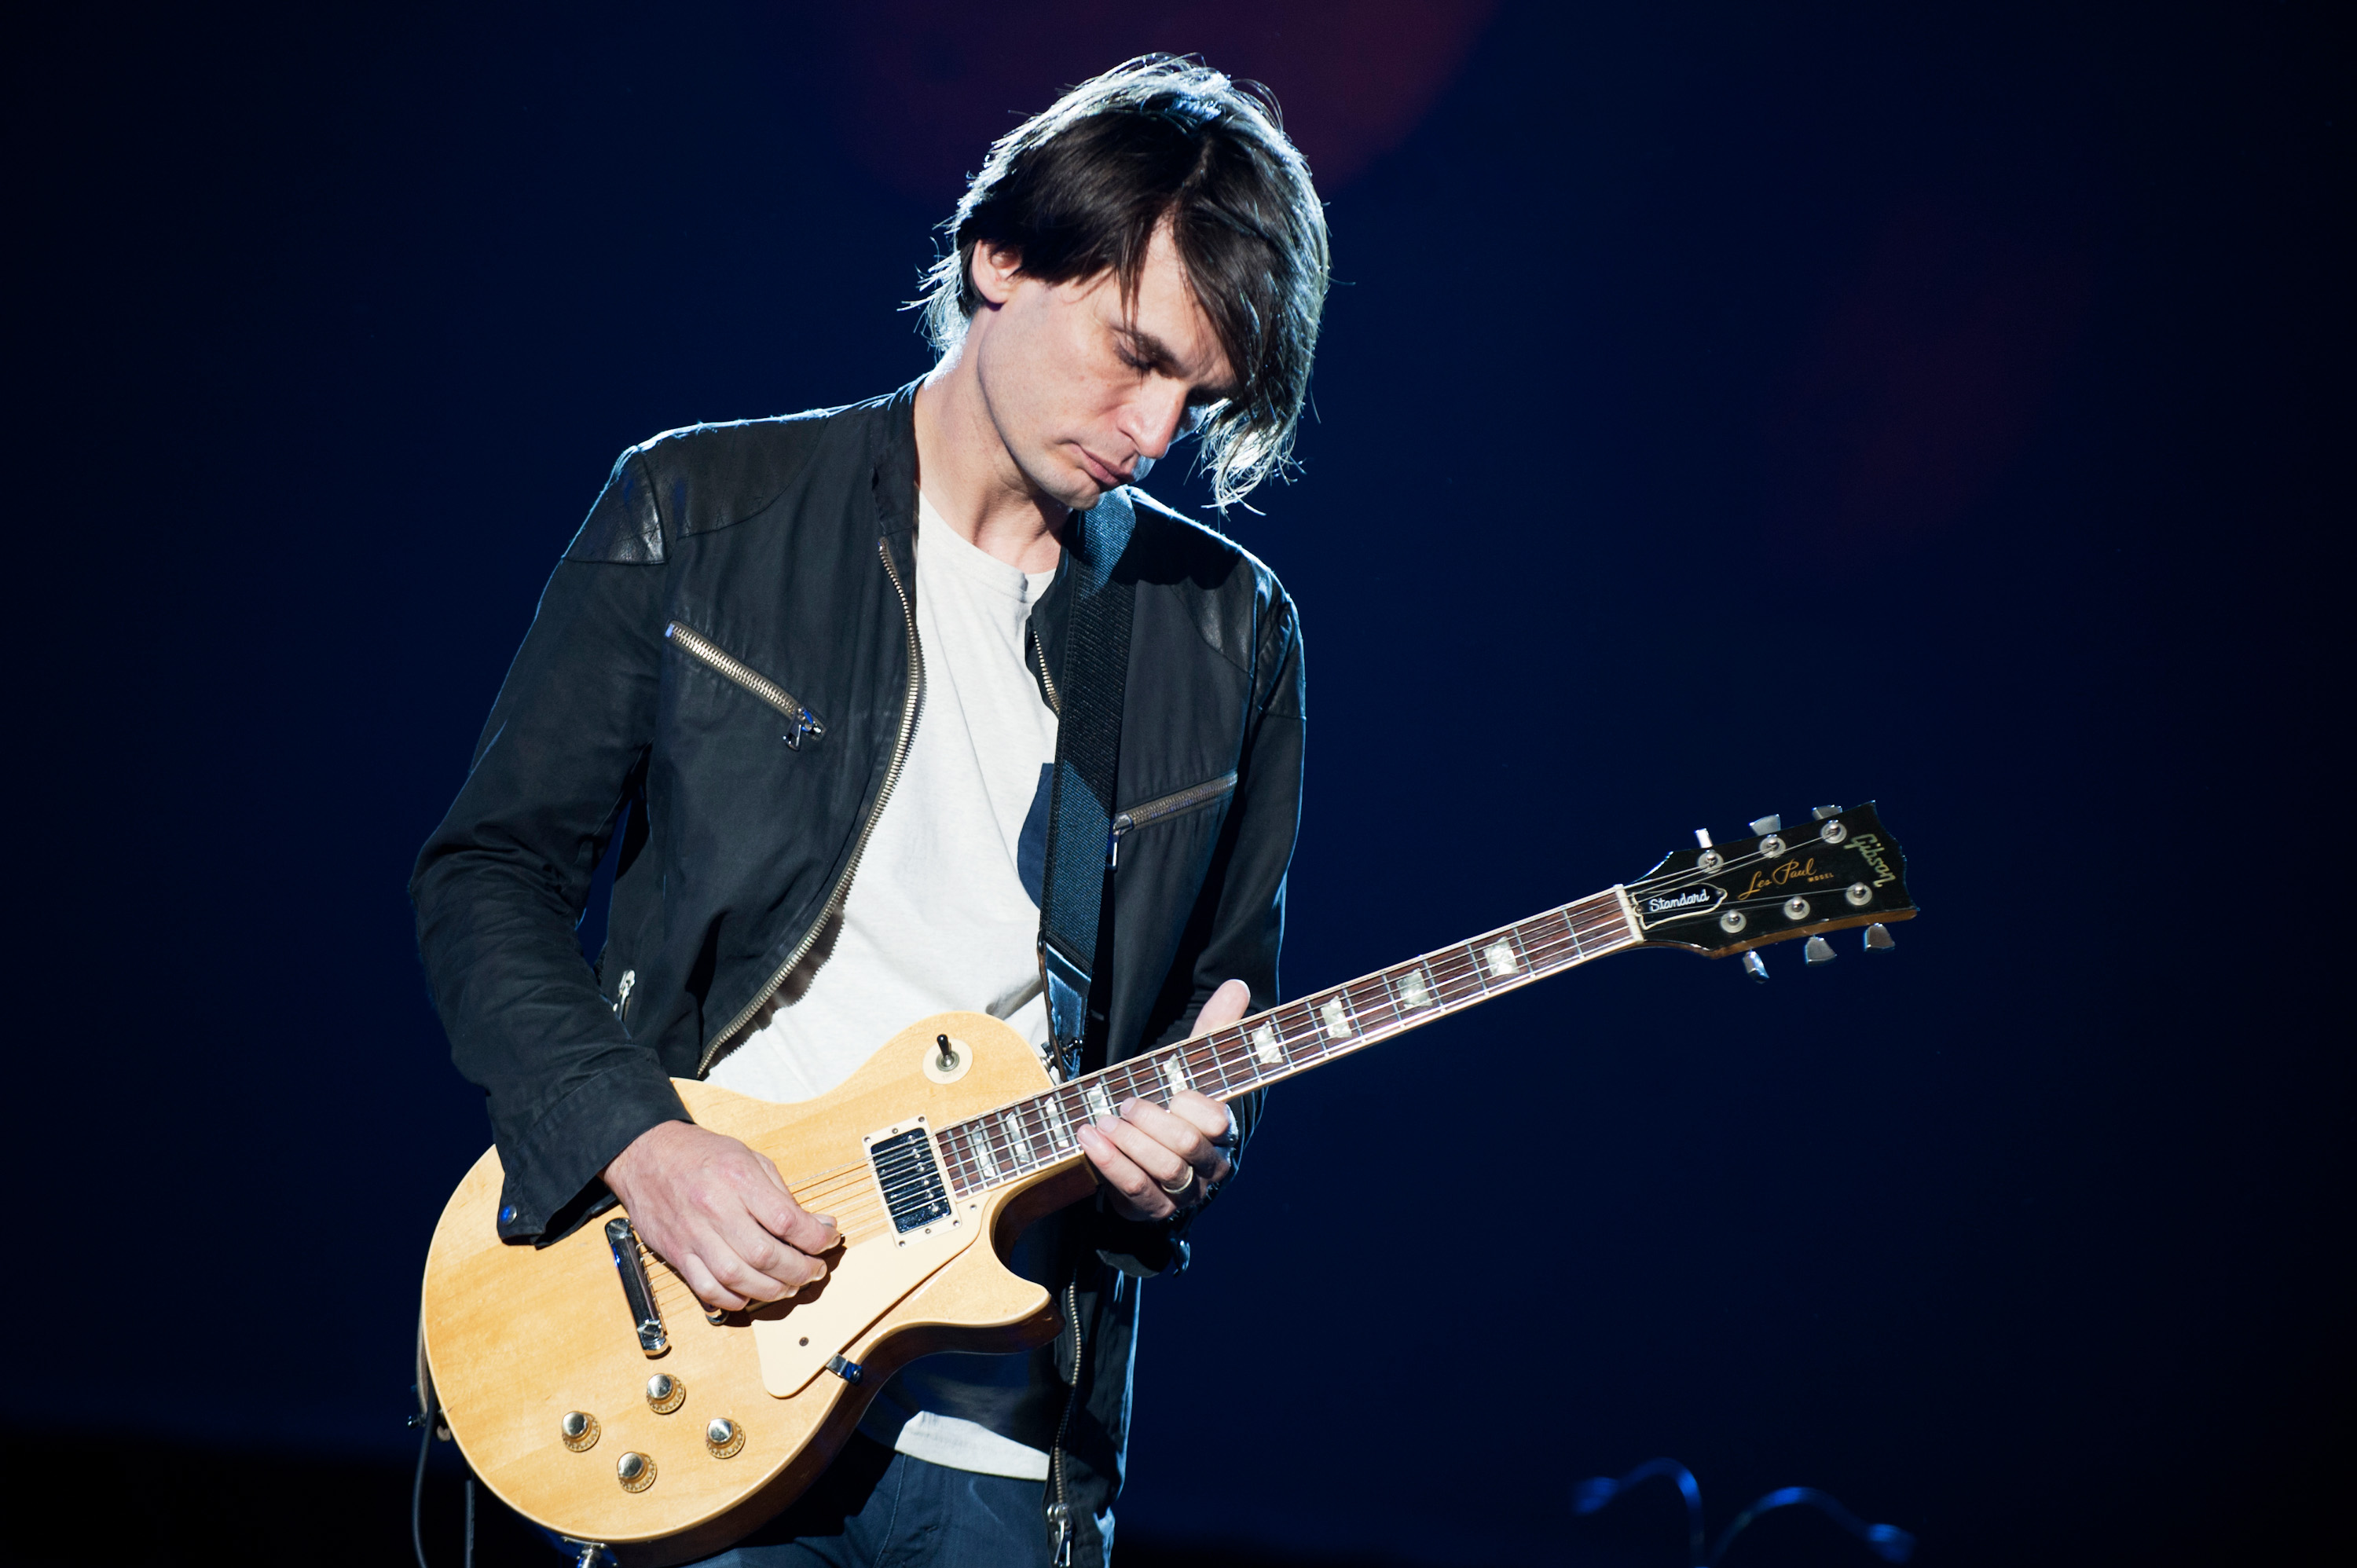 GDYNIA, POLAND - JULY 06: Jonny Greenwood performs on stage on Day 4 of Open'er Festival 2013 on July 6, 2013 in Gdynia, Pola